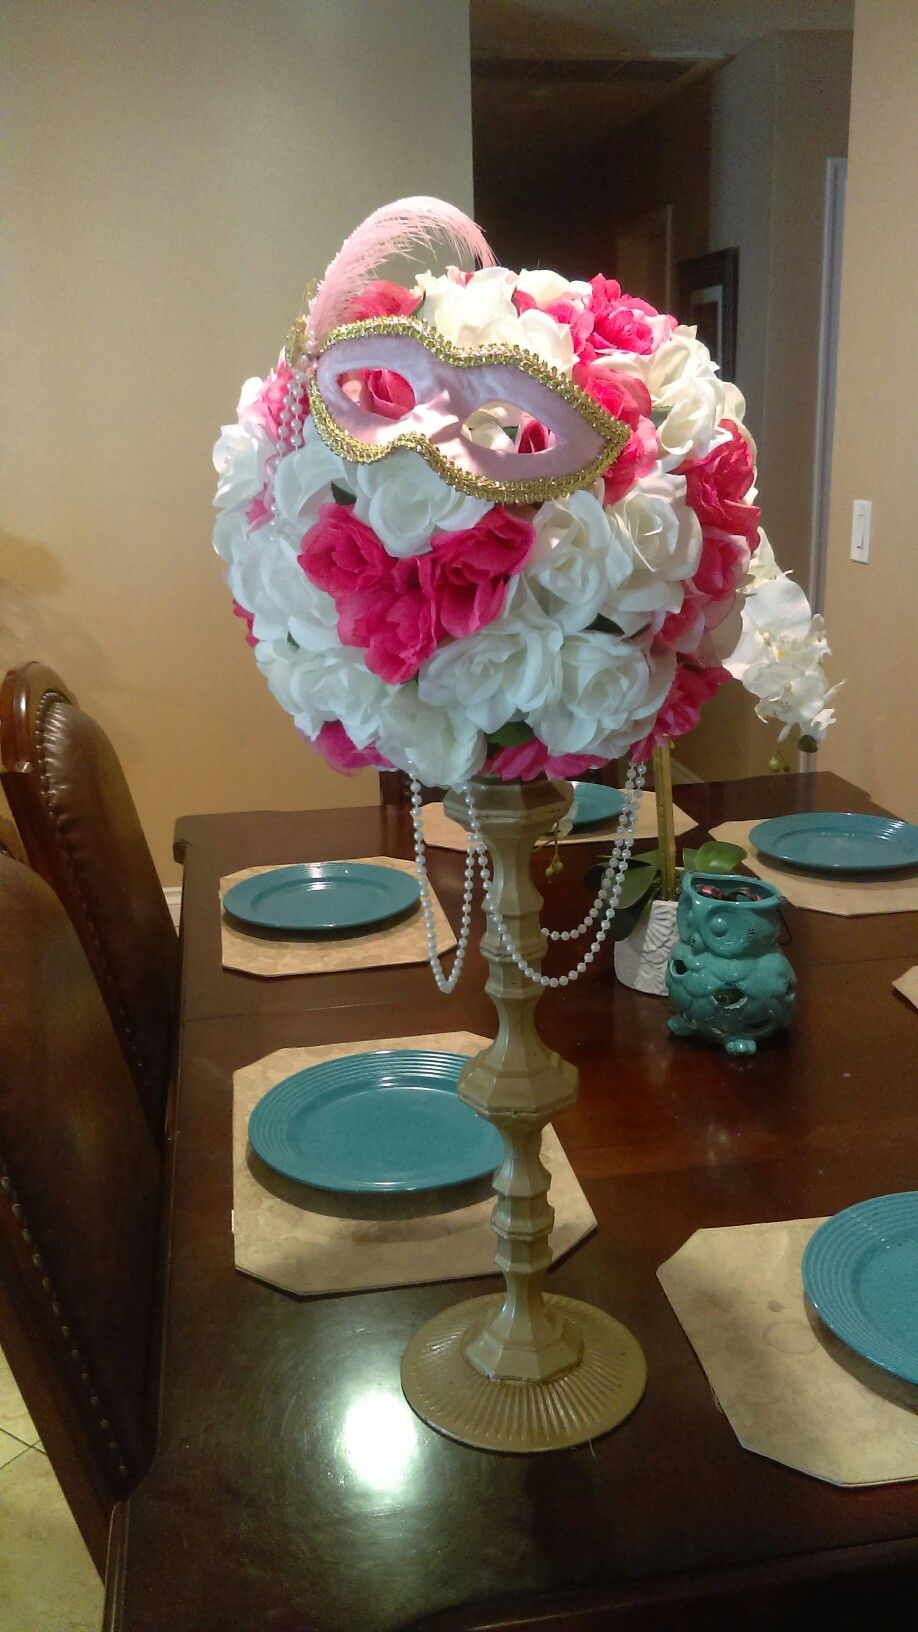 Diy Quinceañera Centerpiece Flowers And Candle Holder Are From Dollar Tree I Used Five Sticks A Salad Plate To Make The Tall Base